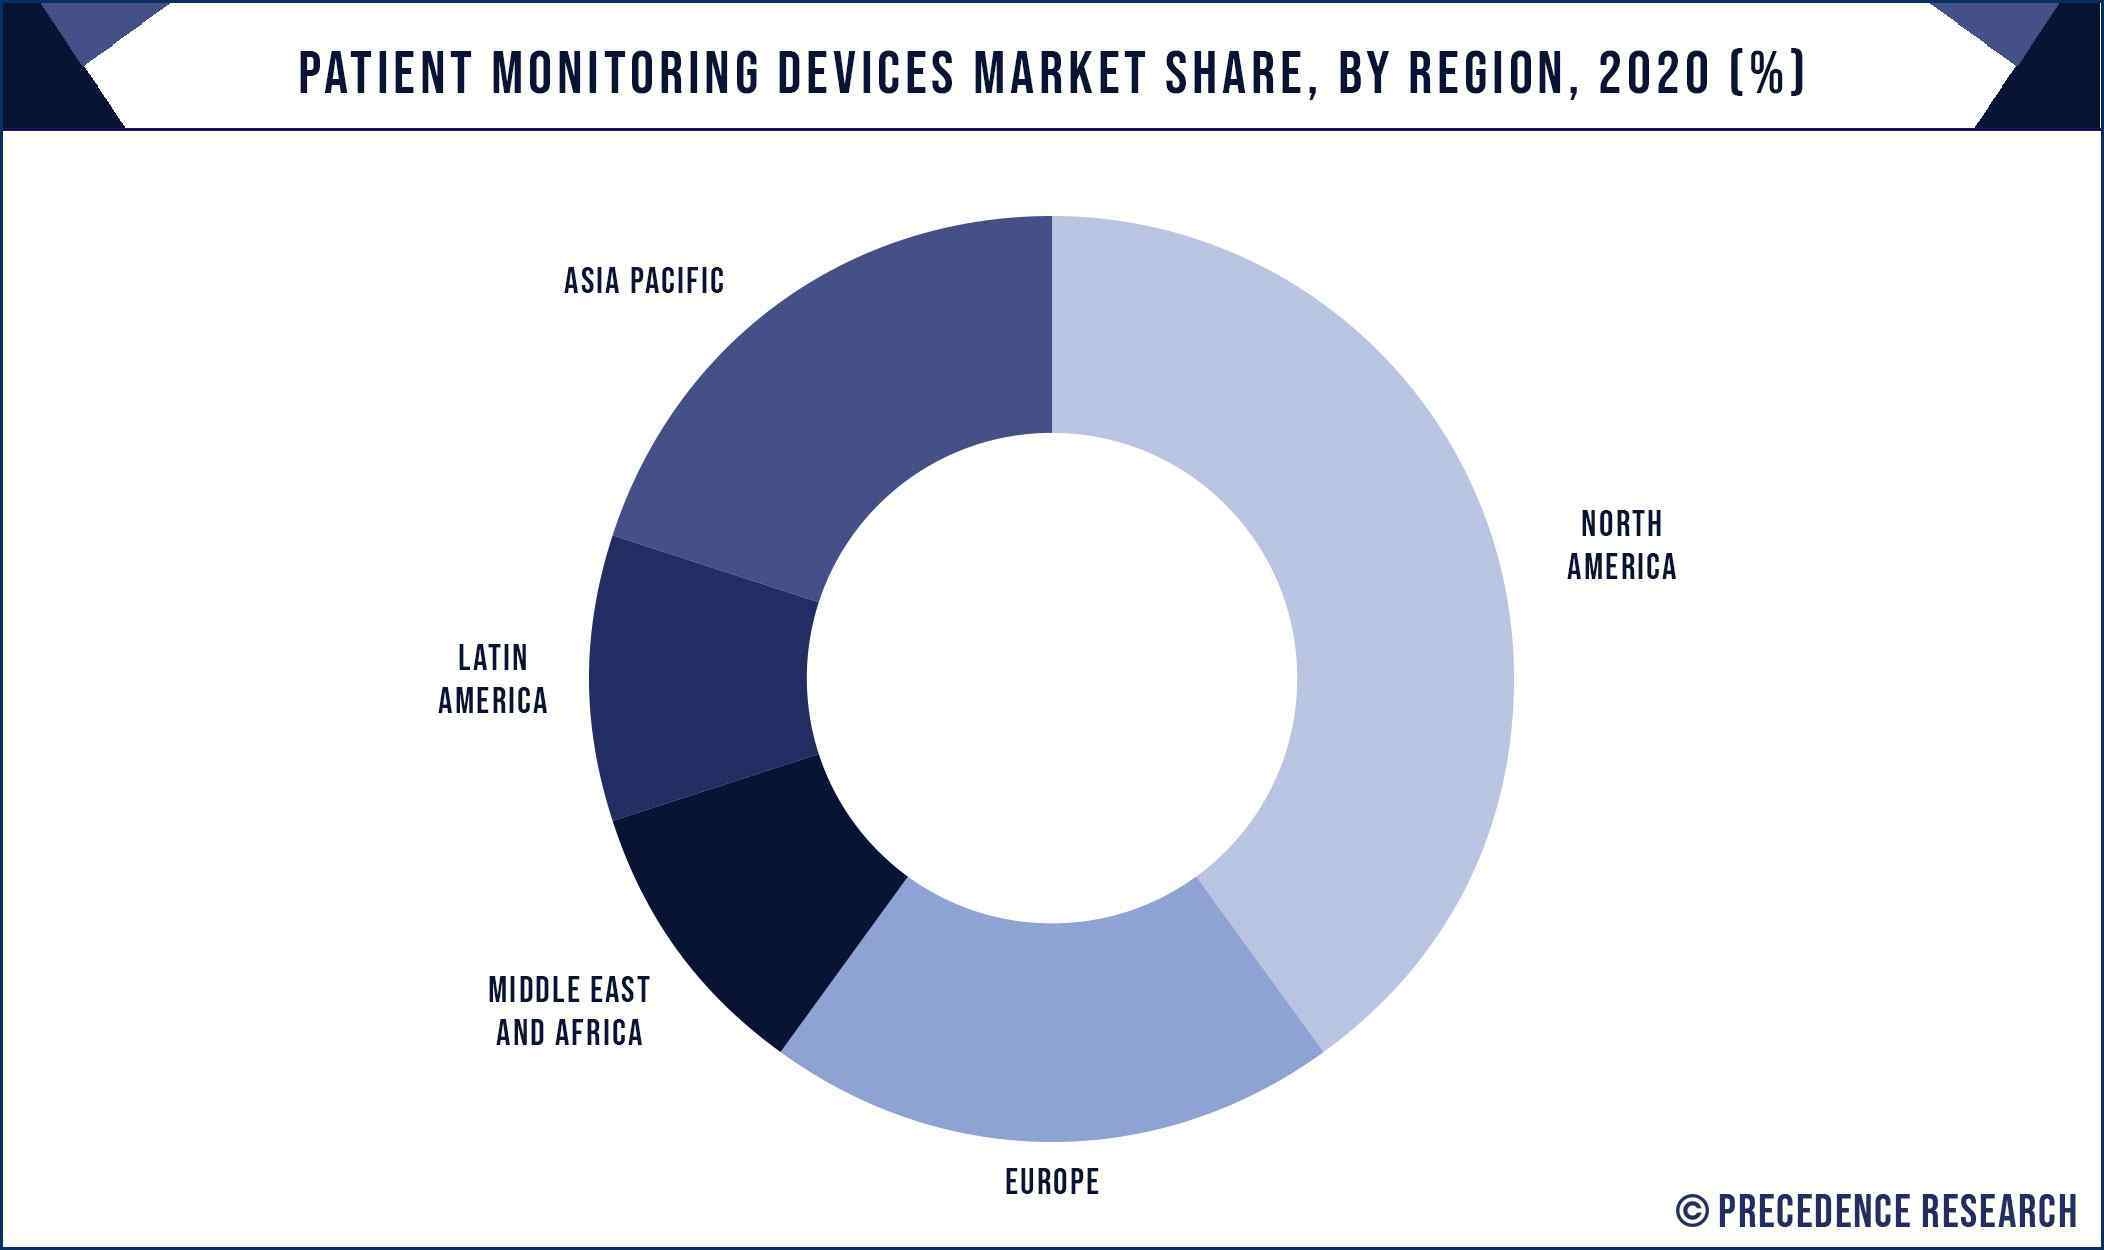 Patient Monitoring Devices Market Share, By Region, 2020 (%)